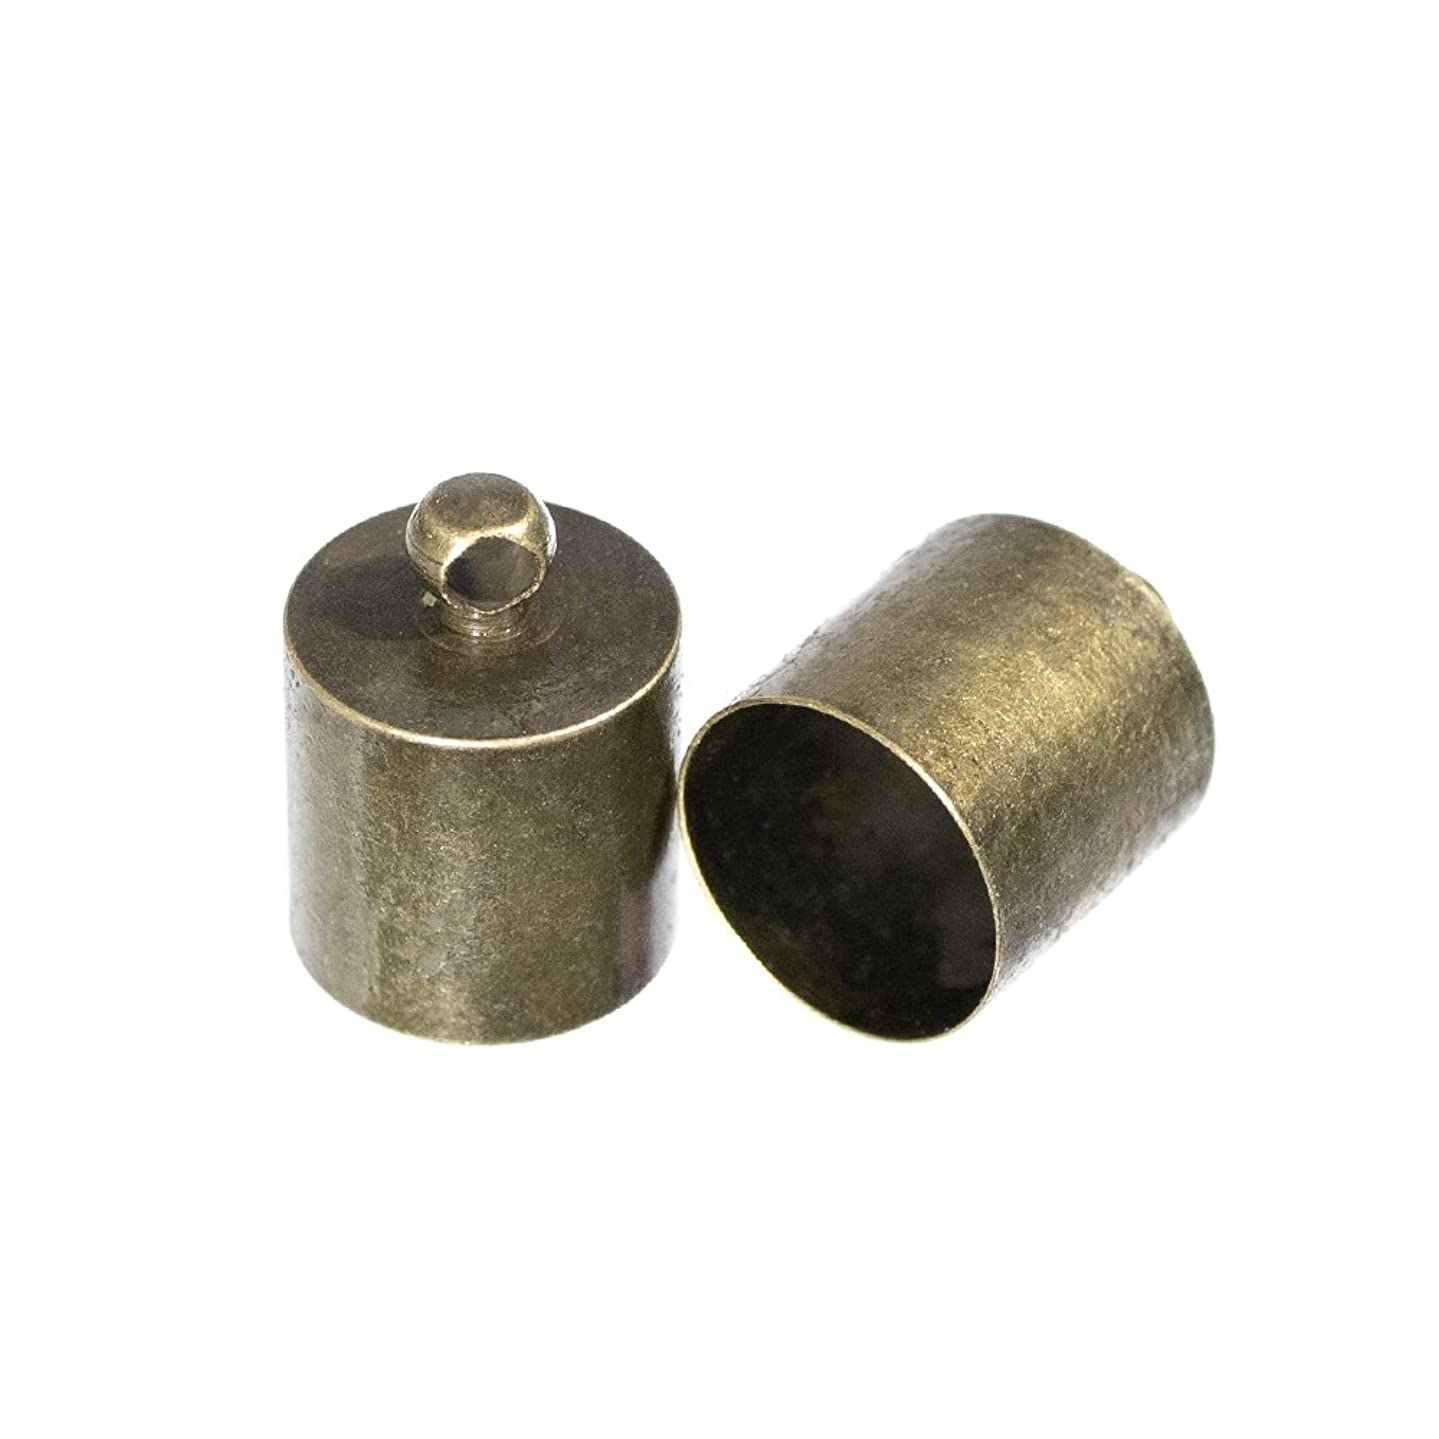 Barrel Cord End Caps – Pack of 2 – Choose from Bronze or Silver – Available in a Variety of Sizes – Great for Crafts, Decoration, Repairs, and Jewelry Making